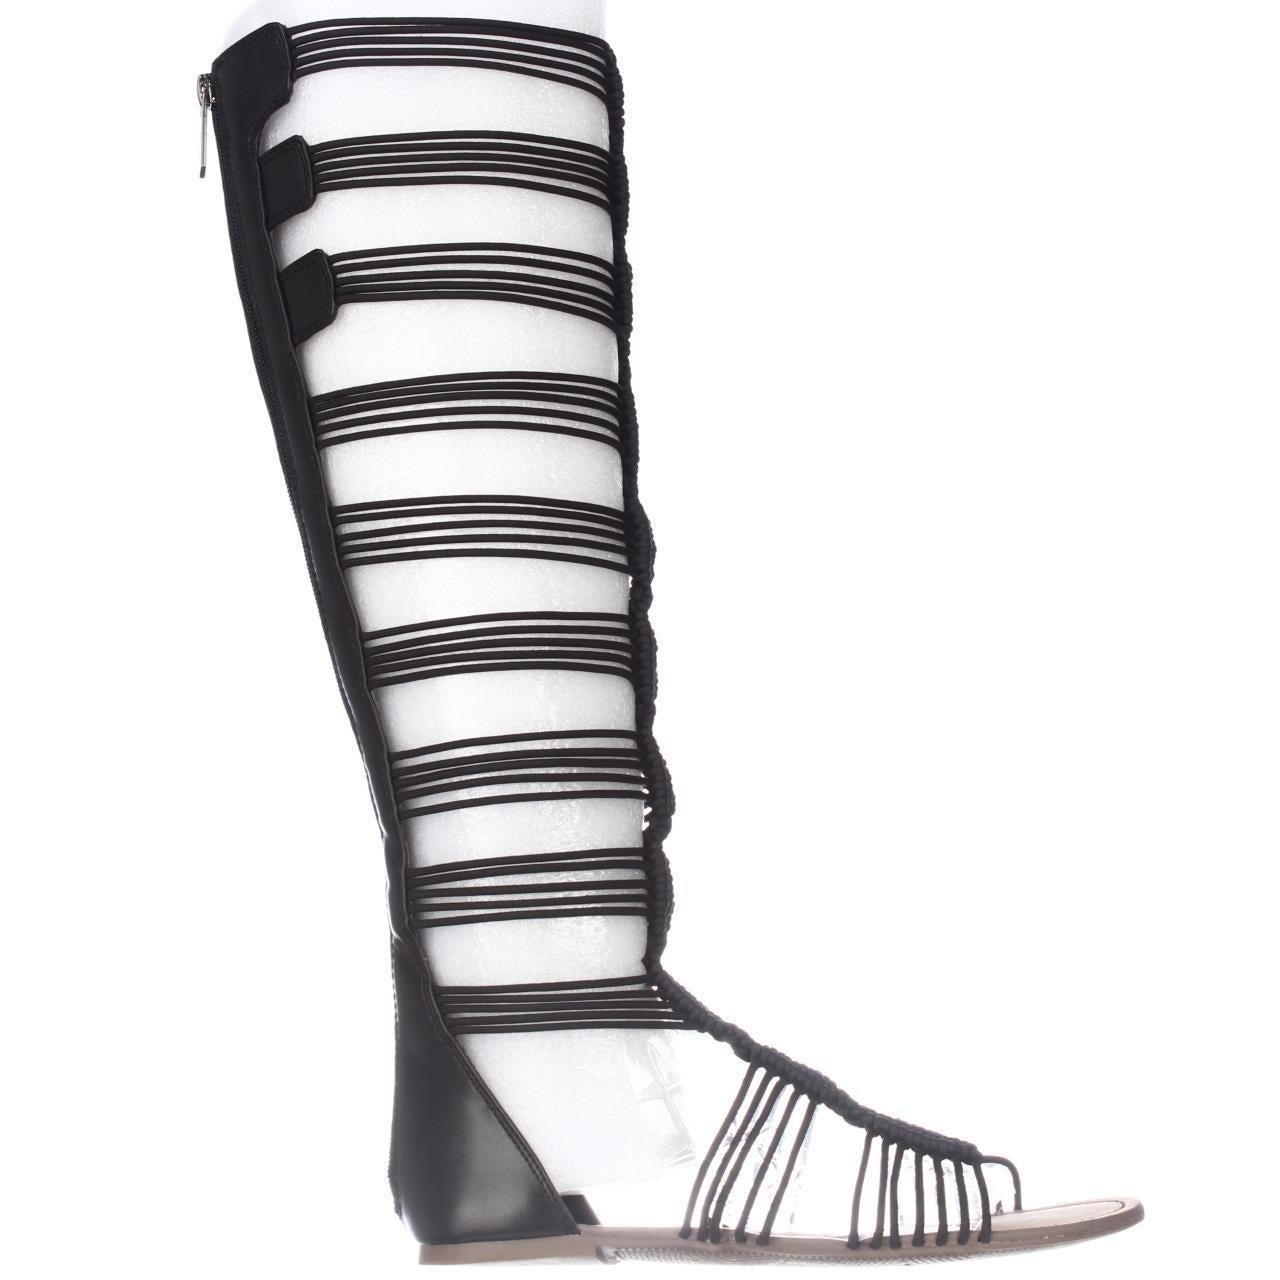 4053c2216e9 Shop Circus by Sam Edelman Badger Knee High Gladiator Sandals - Black -  Free Shipping Today - Overstock - 14615172